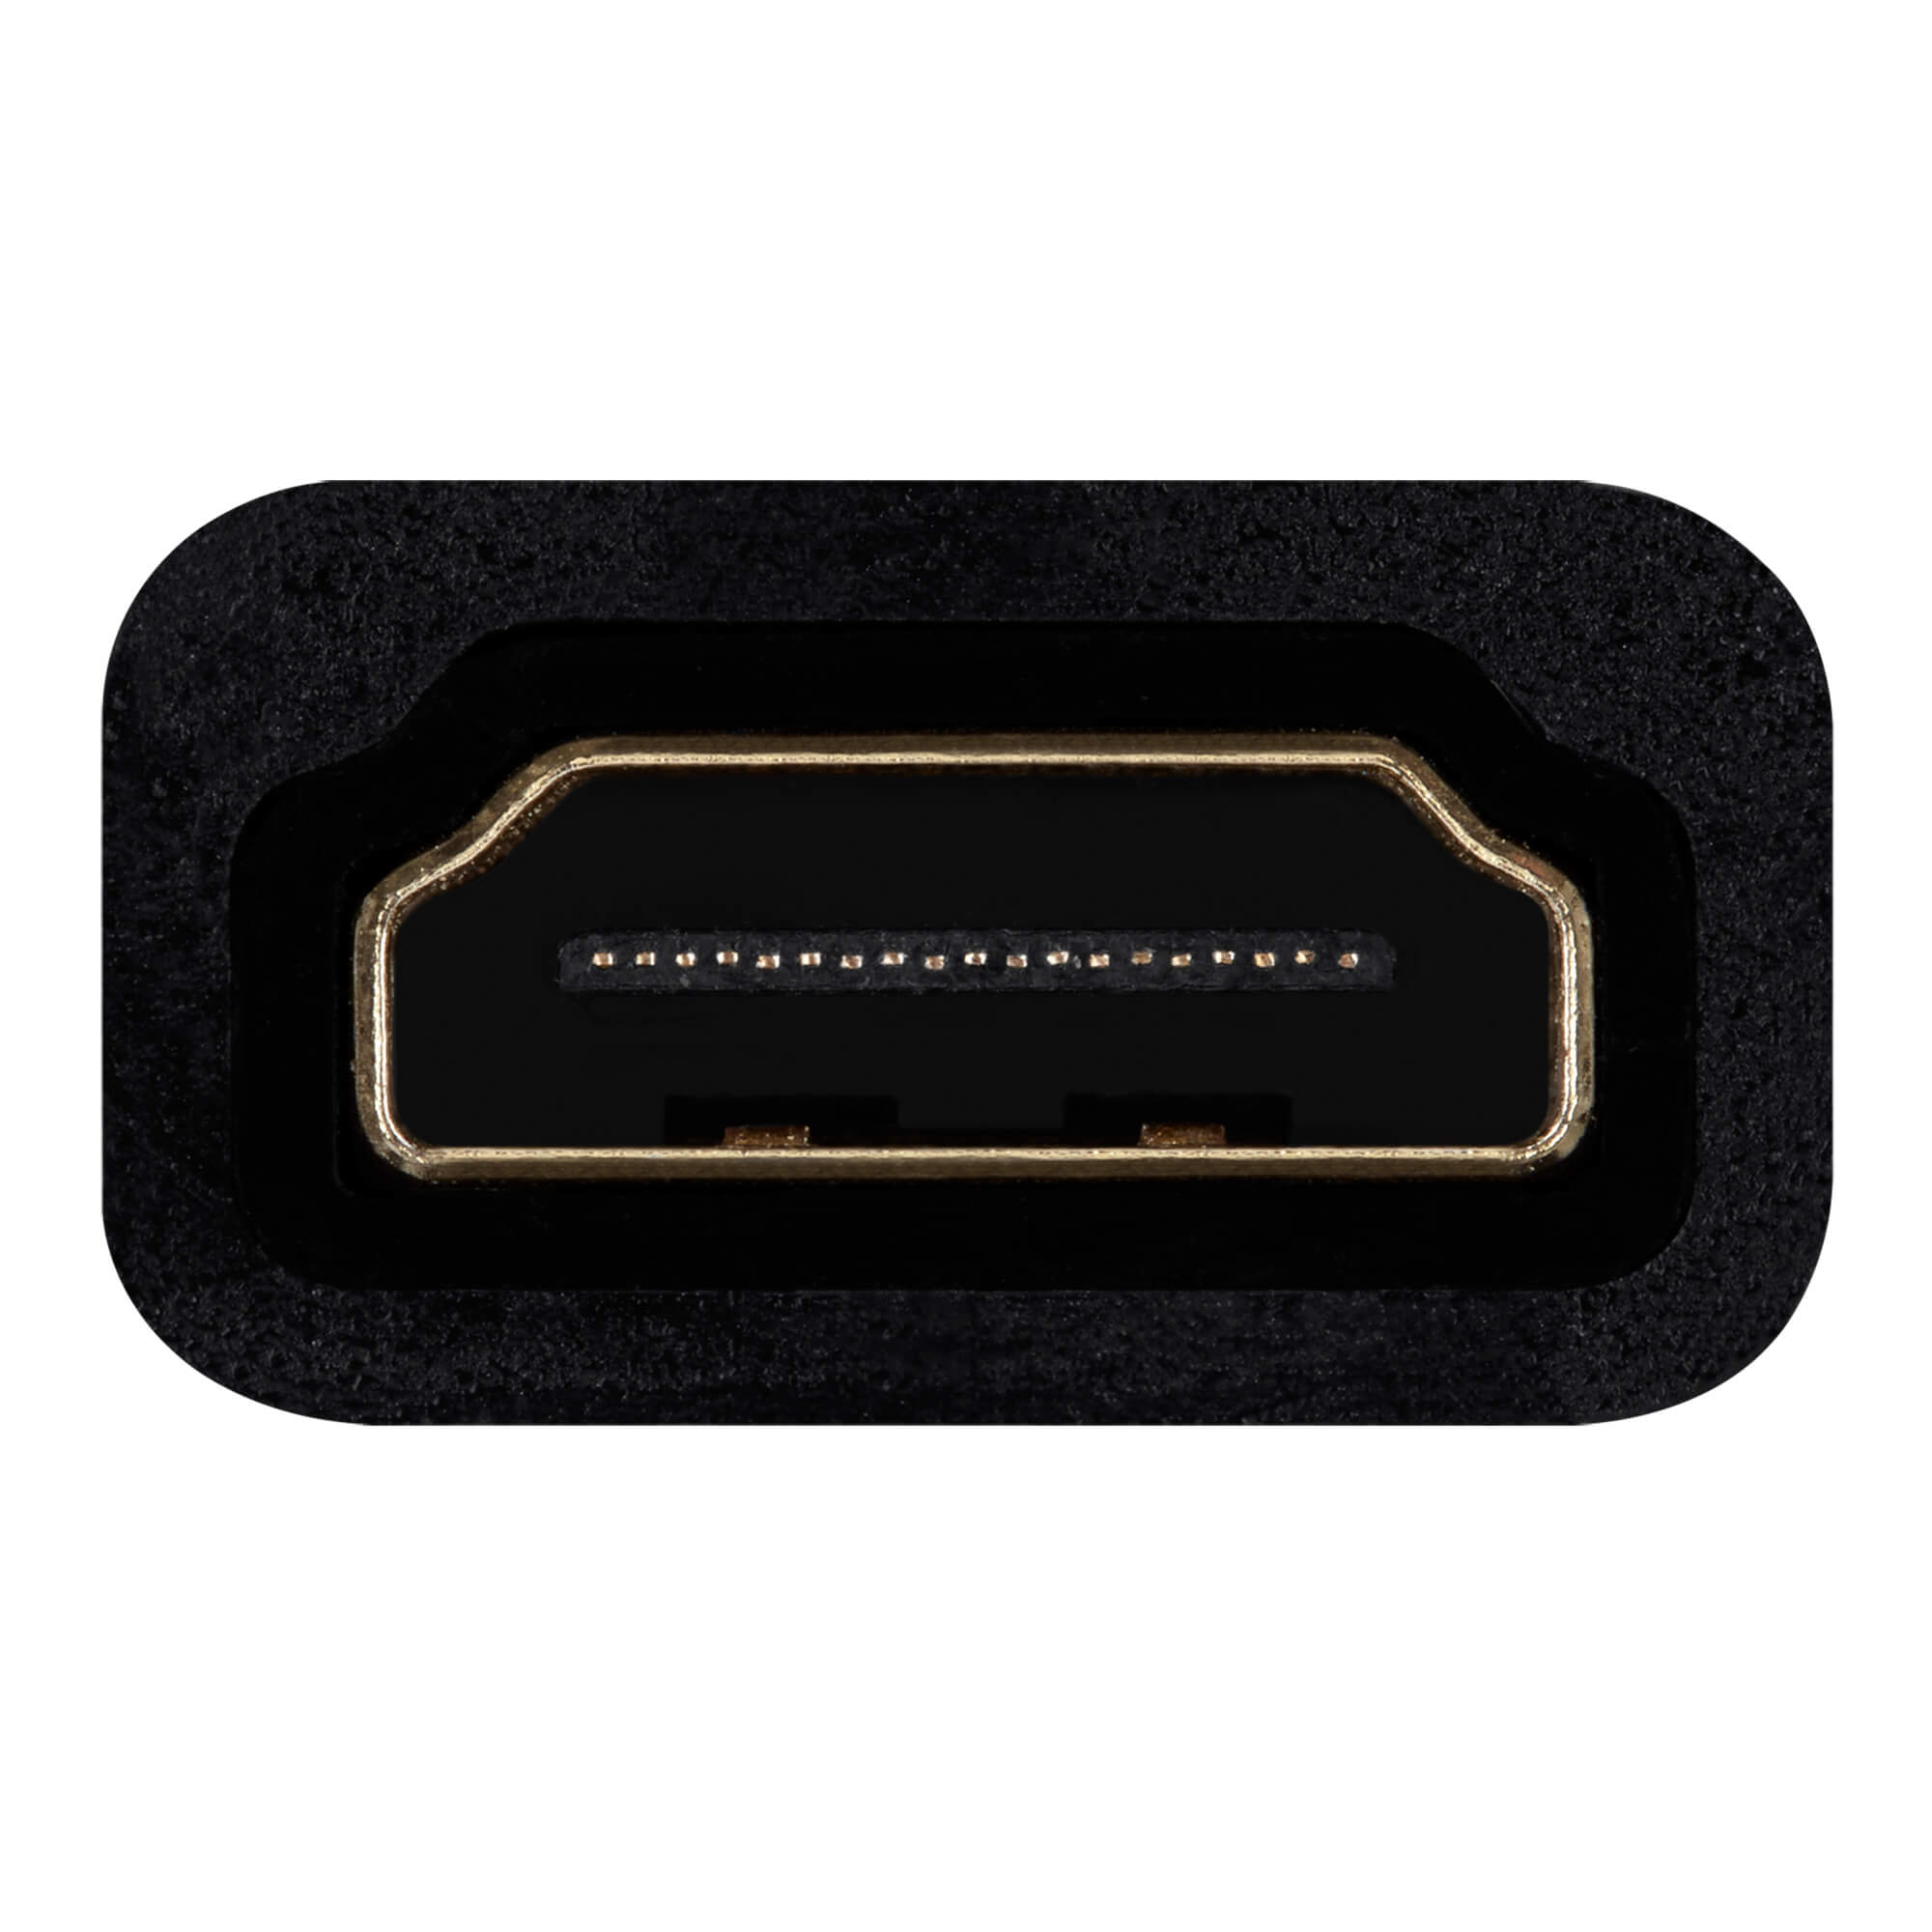 Belkin Universal Hdmi To Vga Adapter With Audio Price 7